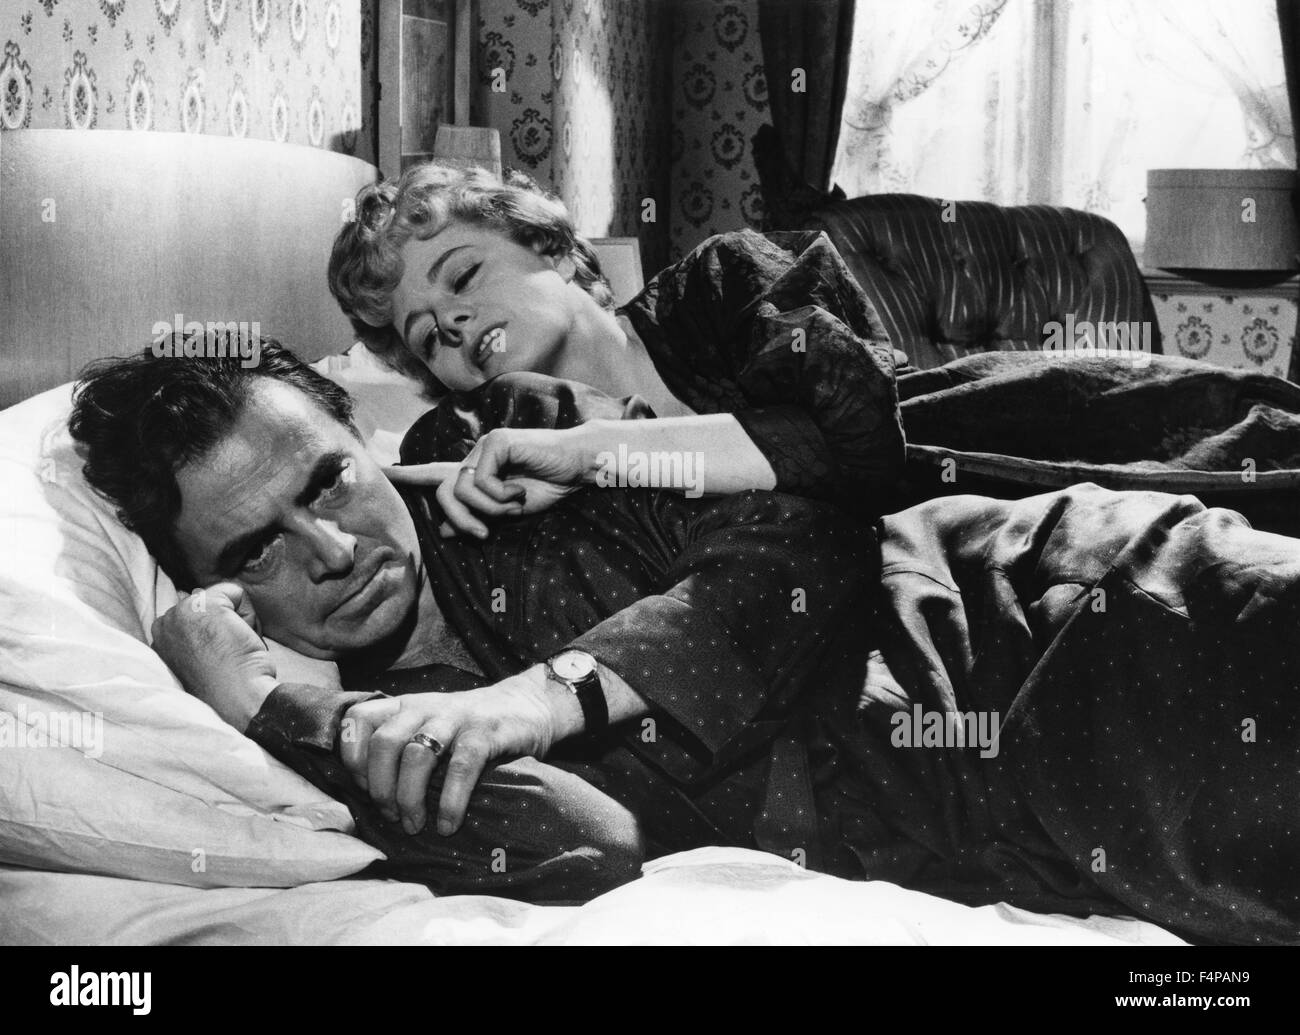 James Mason, Shelley Winters / Lolita 1962 directed by Stanley Kubrick - Stock Image